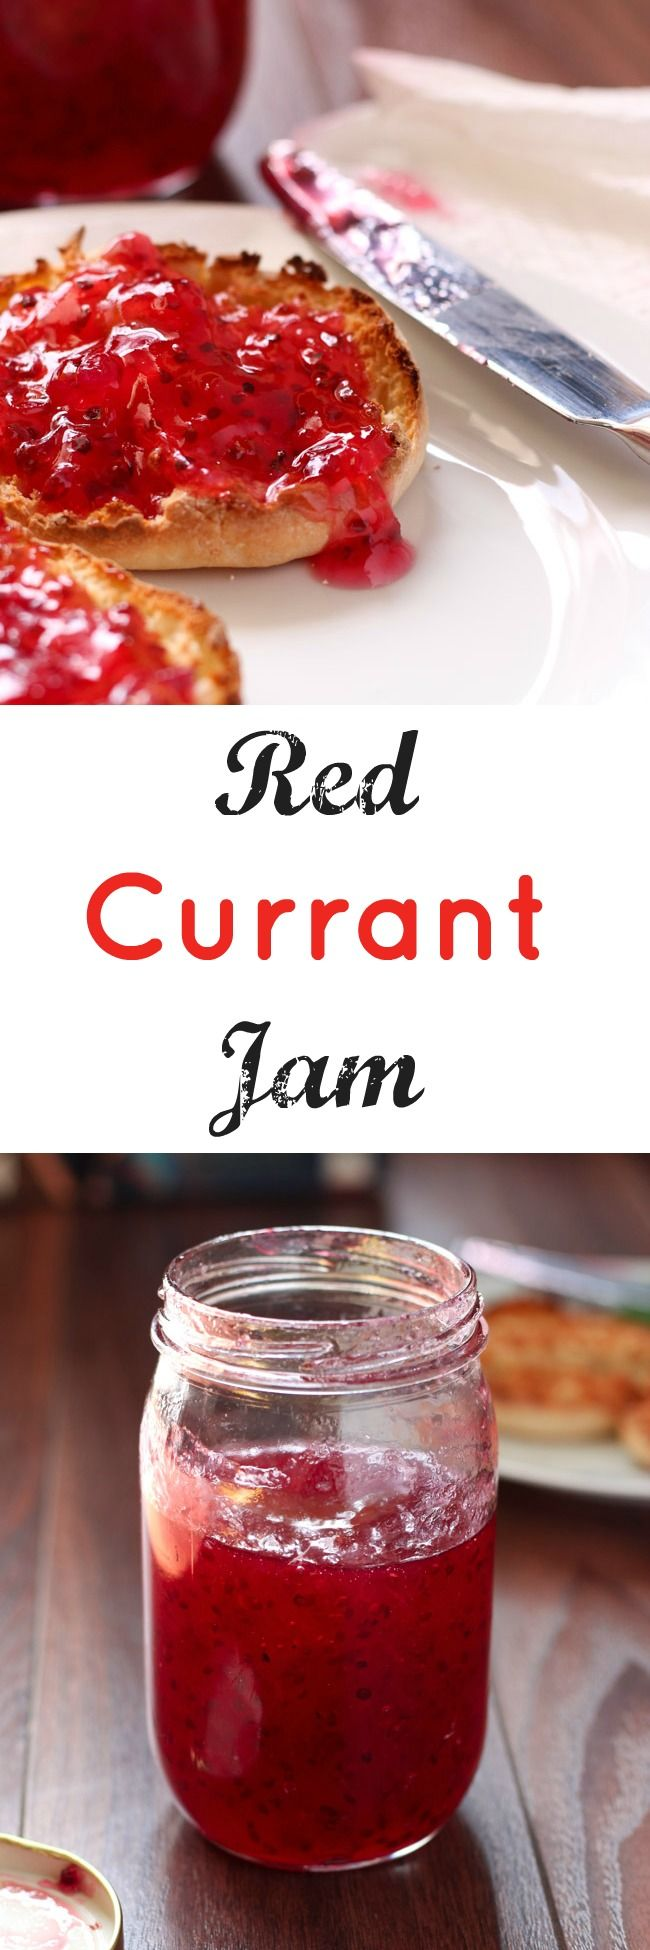 Making jam at home is surprisingly easy and makes delicious result! This recipe for red currant jam fills a 1 pint jar and you'll devour it quickly.